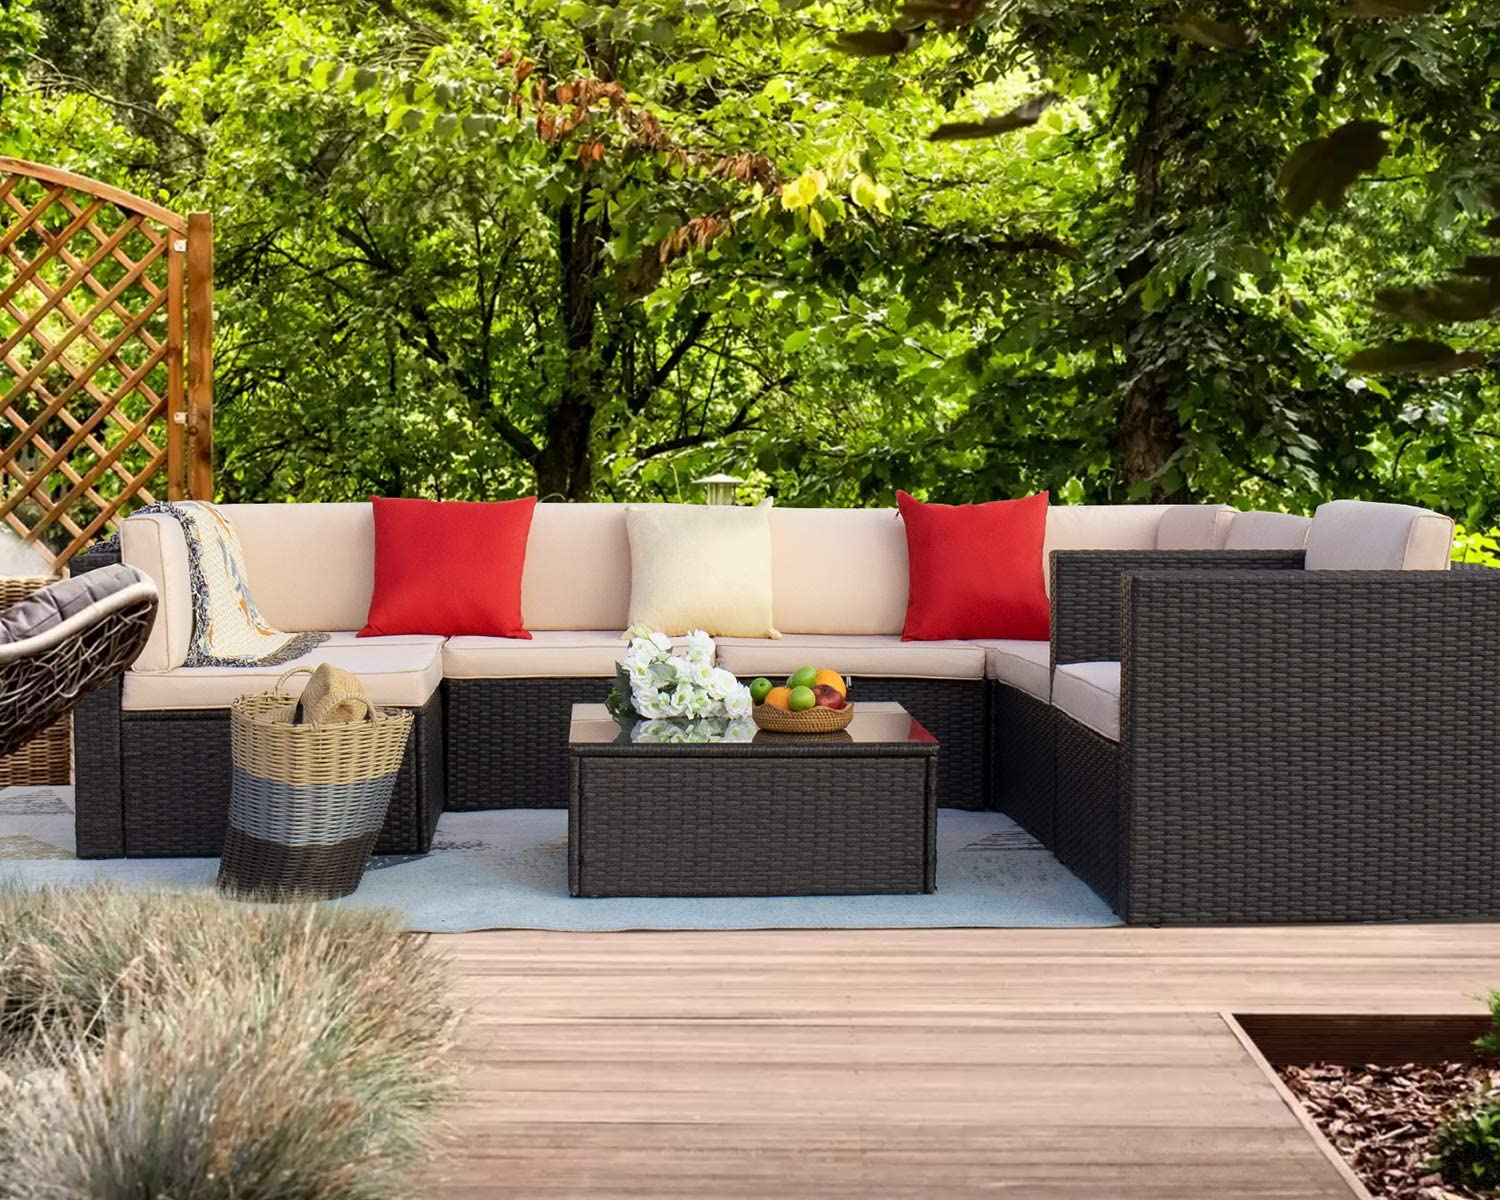 Homall 8 Pieces Challenge the lowest price of Japan ☆ Max 42% OFF Outdoor Patio Furniture Weather PE All Set Sofa